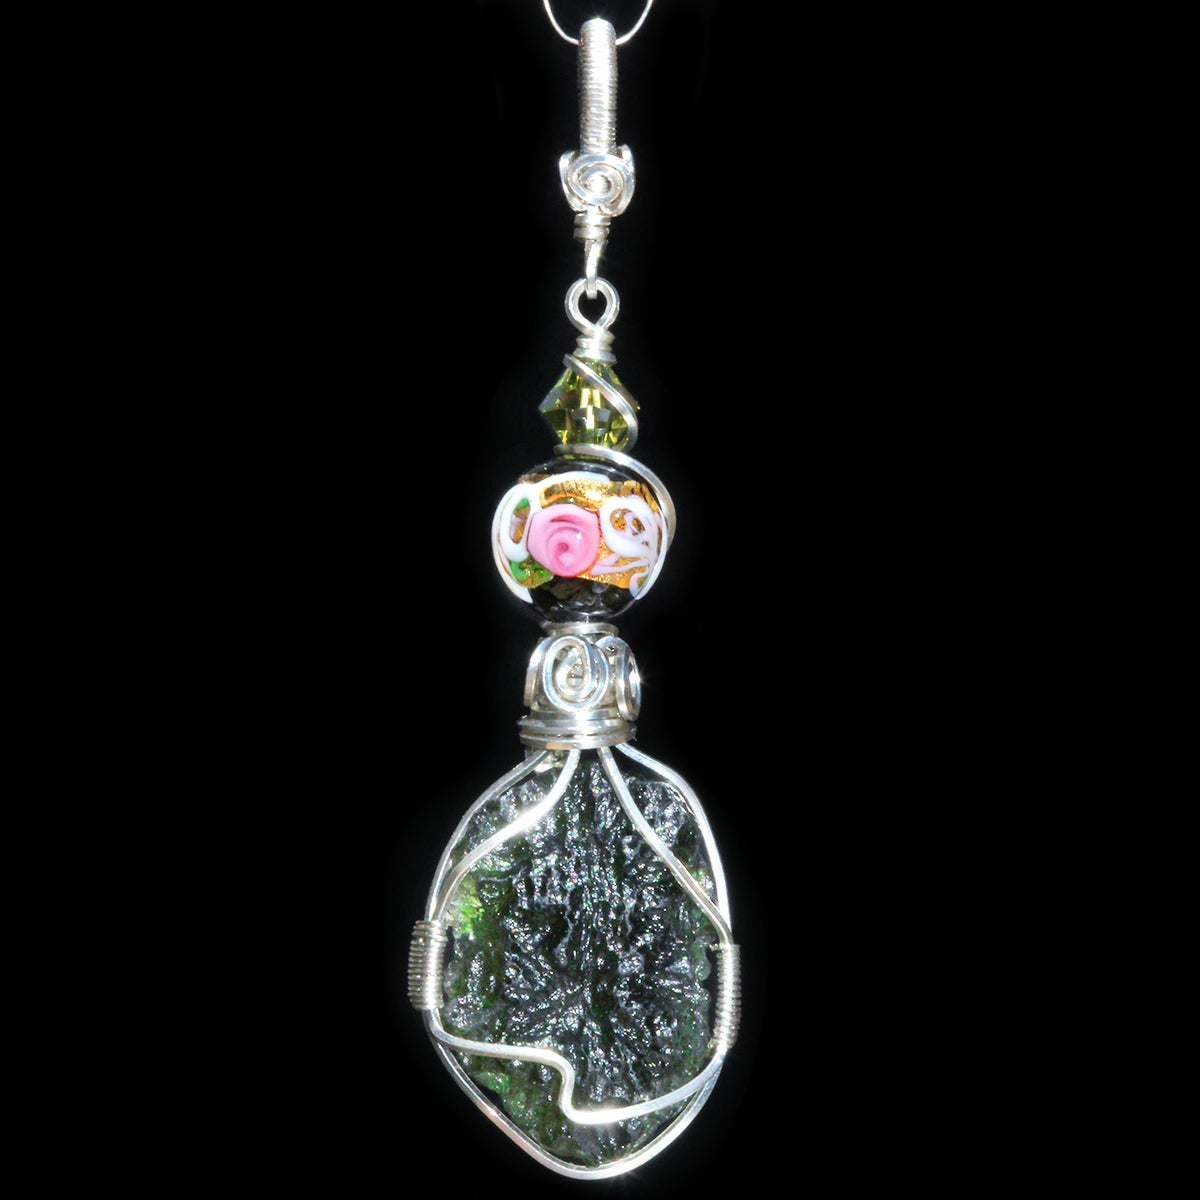 Moldavite Handmade Sterling Pendant with Venetian Glass Wedding Cake Bead